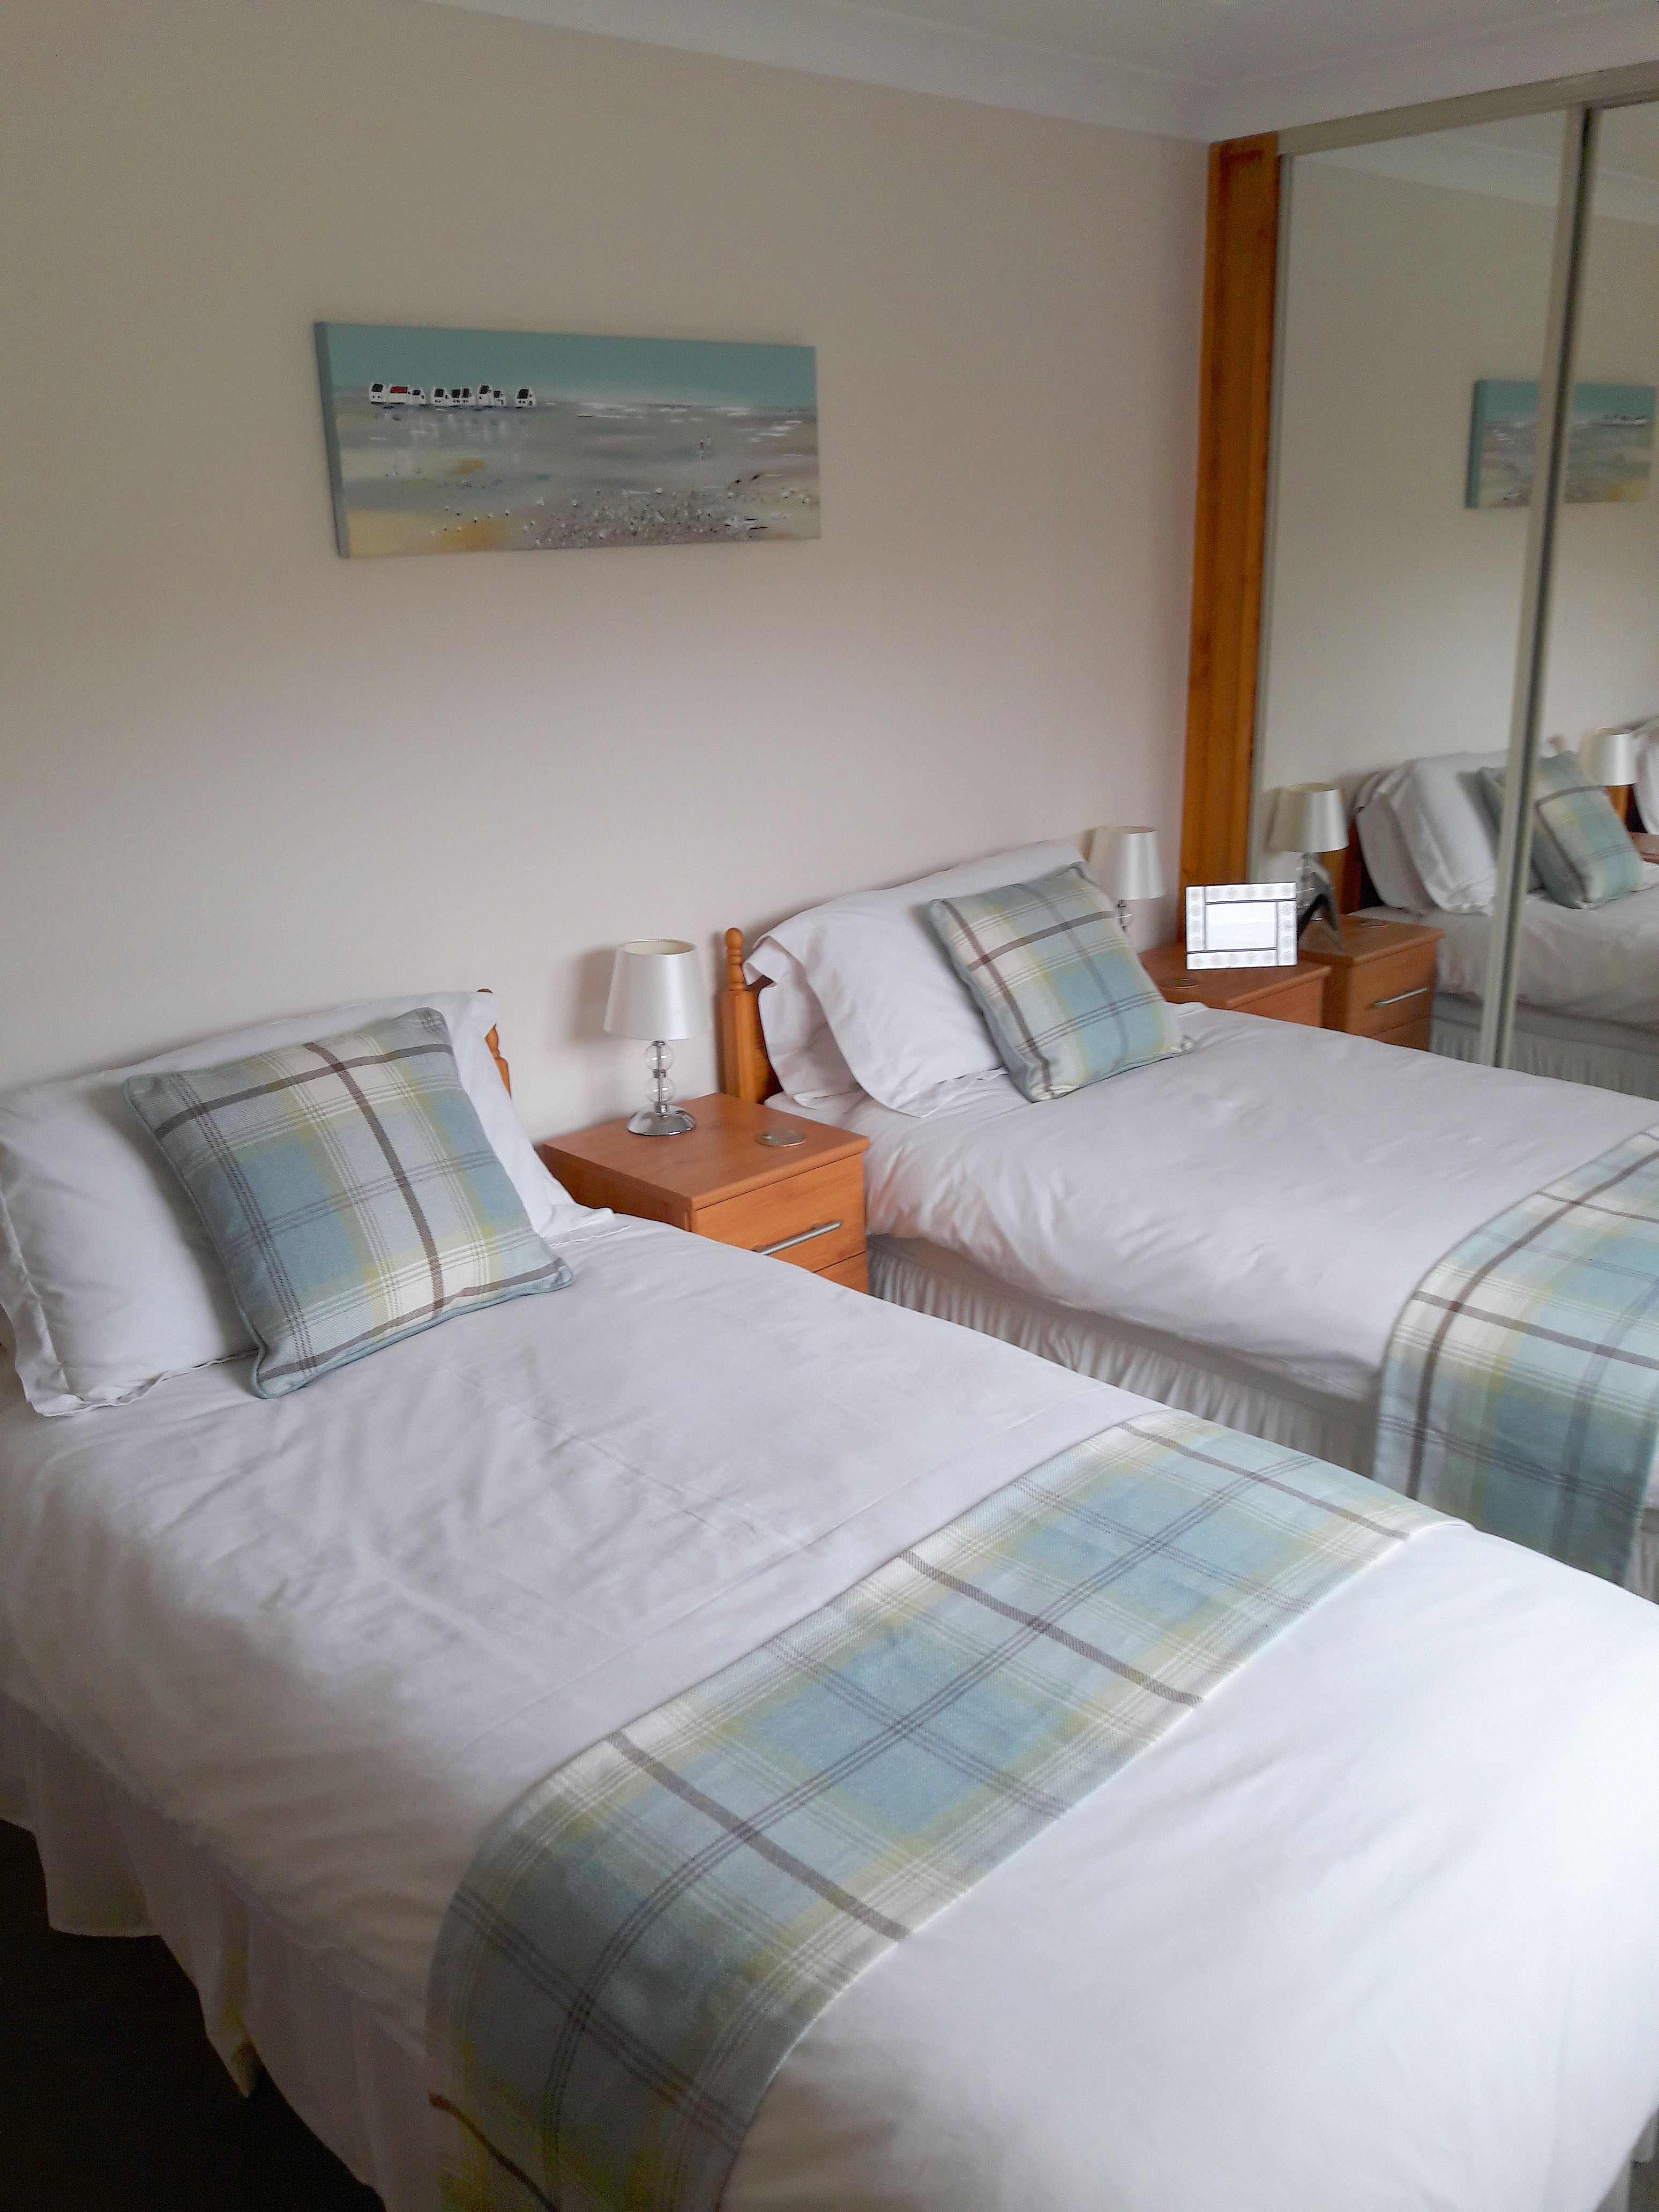 The bedroom at Otters Leap cottage, Skye